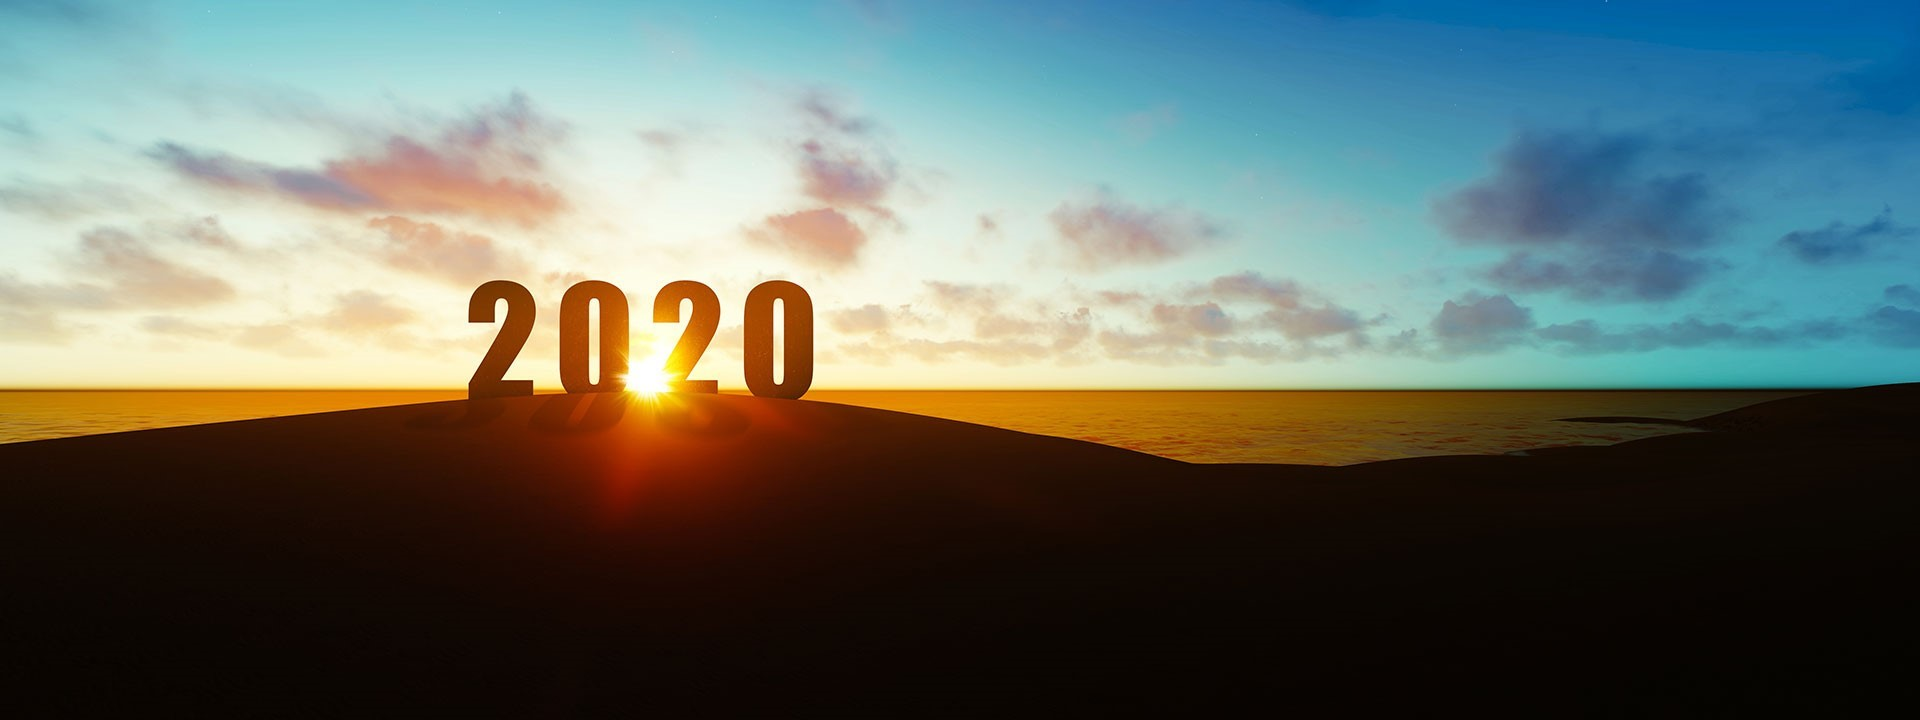 2020 A Heartfelt Resolution